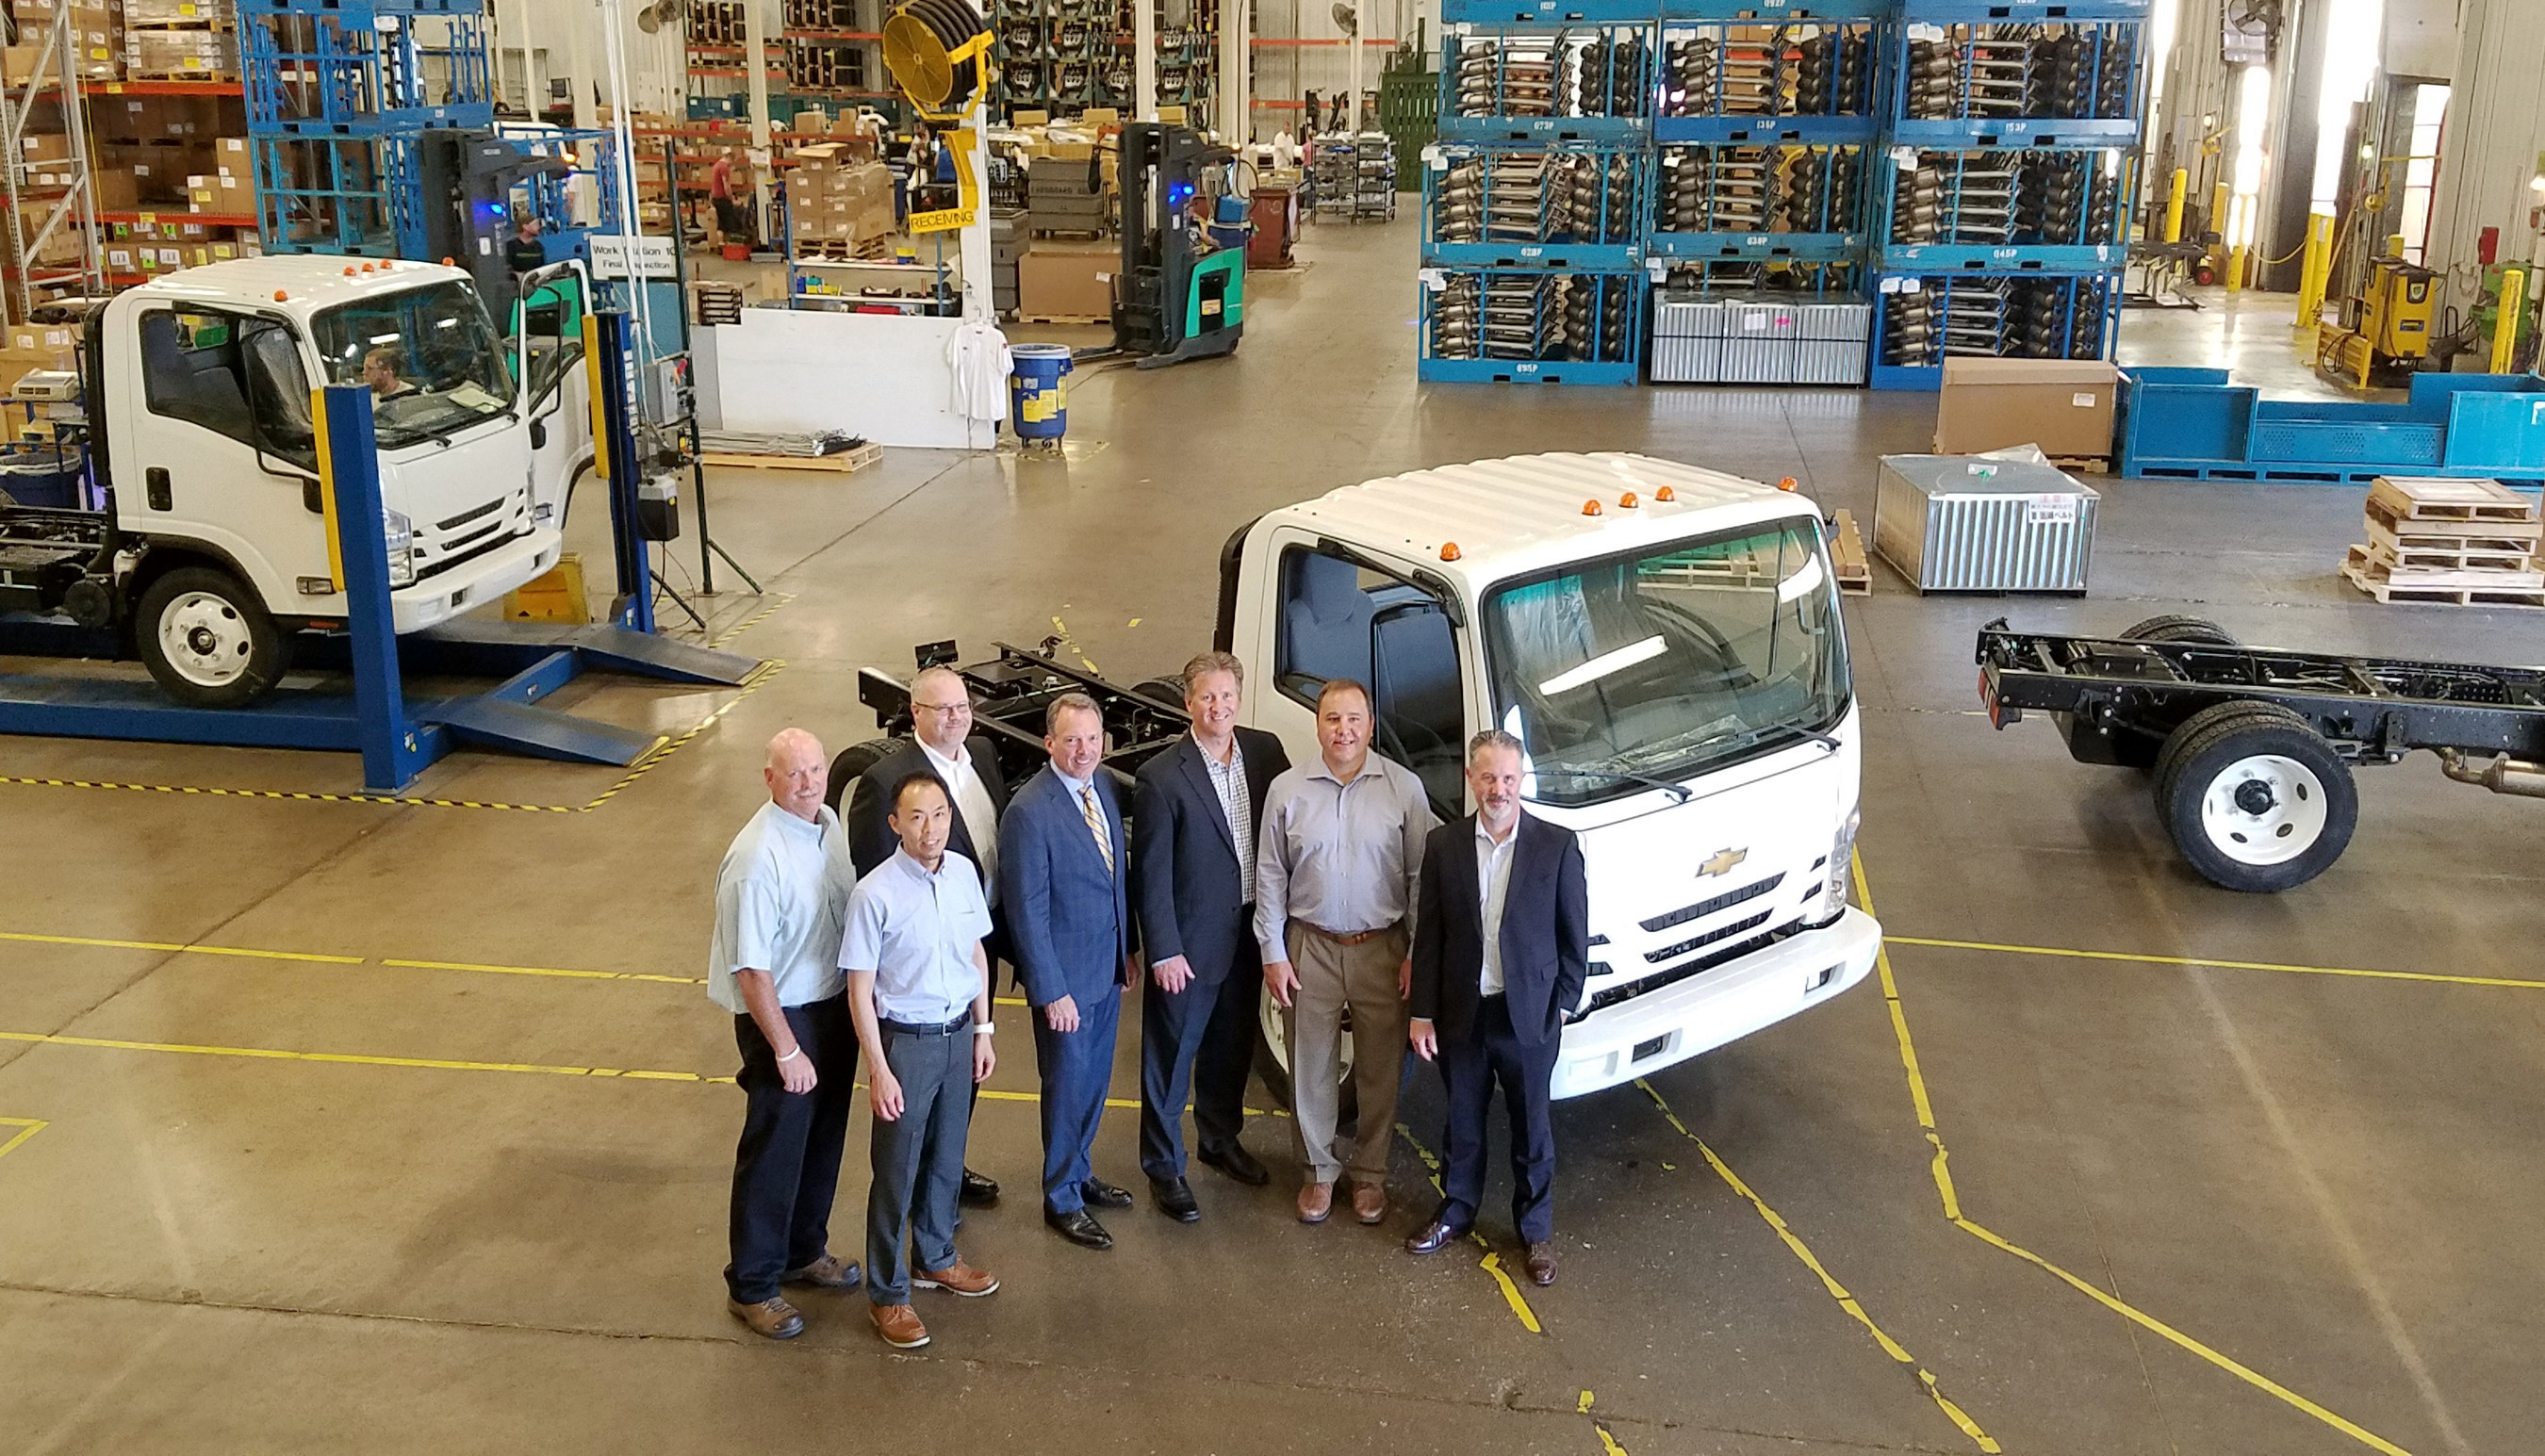 First Chevrolet Medium Duty Truck Rolls Off the Line at Spartan Motors. People- Left from right: Thomas A. Meisel, Isuzu North America Corporation, Takusei Nakagawa, VP CV Product Planning, Isuzu North America Corporation, Kevin Brewer, Medium Duty Marketing and Sales Manager, General Motors Fleet, Daryl Adams: President and CEO, Spartan Motors, John Schwegman, U.S. Director of Commercial Product, General Motors Fleet, Steve Guillaume, President, Spartan Specialty Vehicles, Paul Loewer, Medium Duty Product Manager, General Motors Fleet